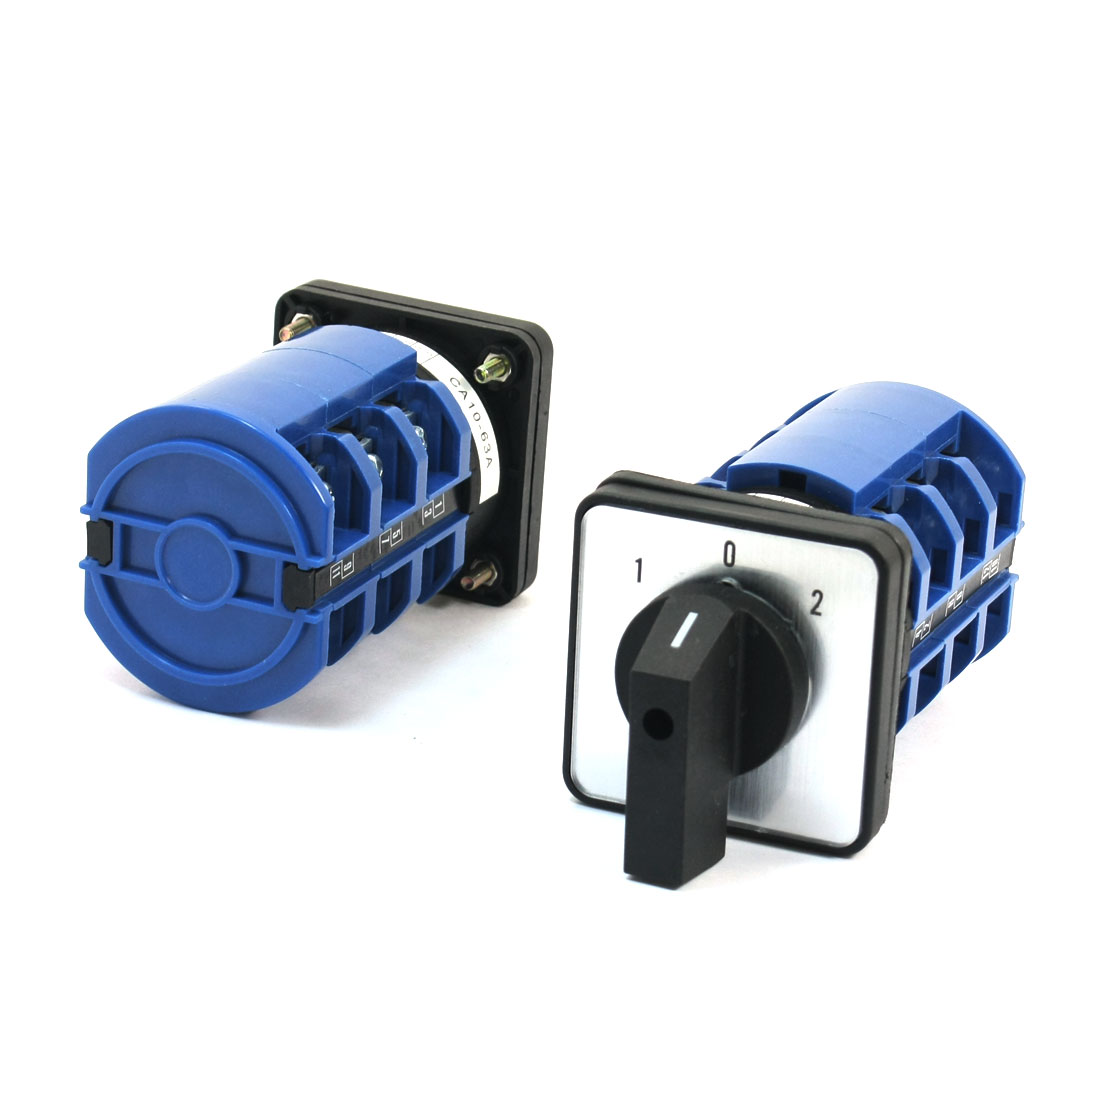 2Pcs CA10-63 Ui 660V Ith 63A 12 Screw Terminal 3-Pole 3Position Square Plastic Panel Mounting Rotary Cam Changeover Switch